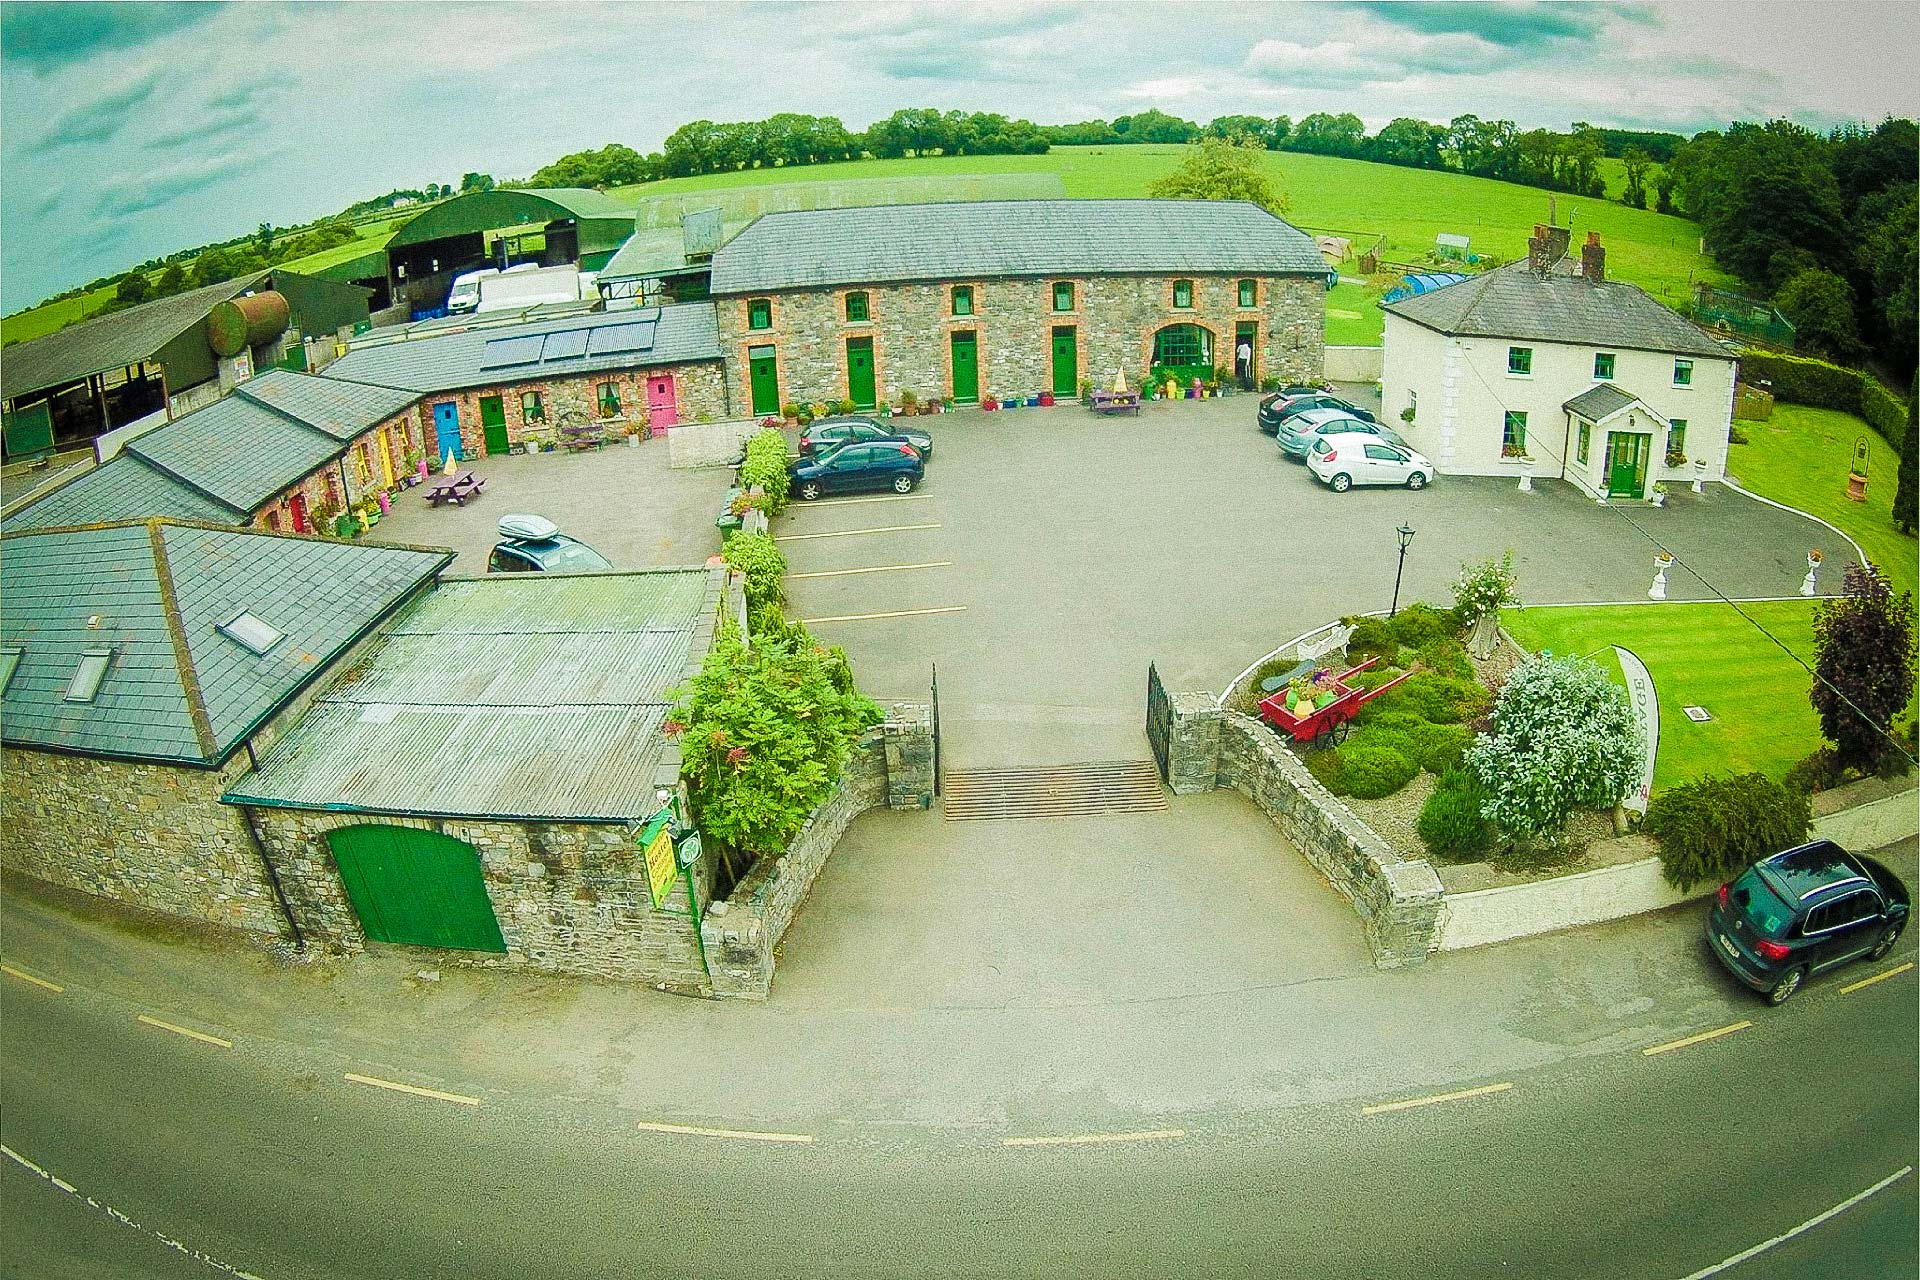 Slane Farm Hostel - Accommodation Boyne Valley Meath Aerial view